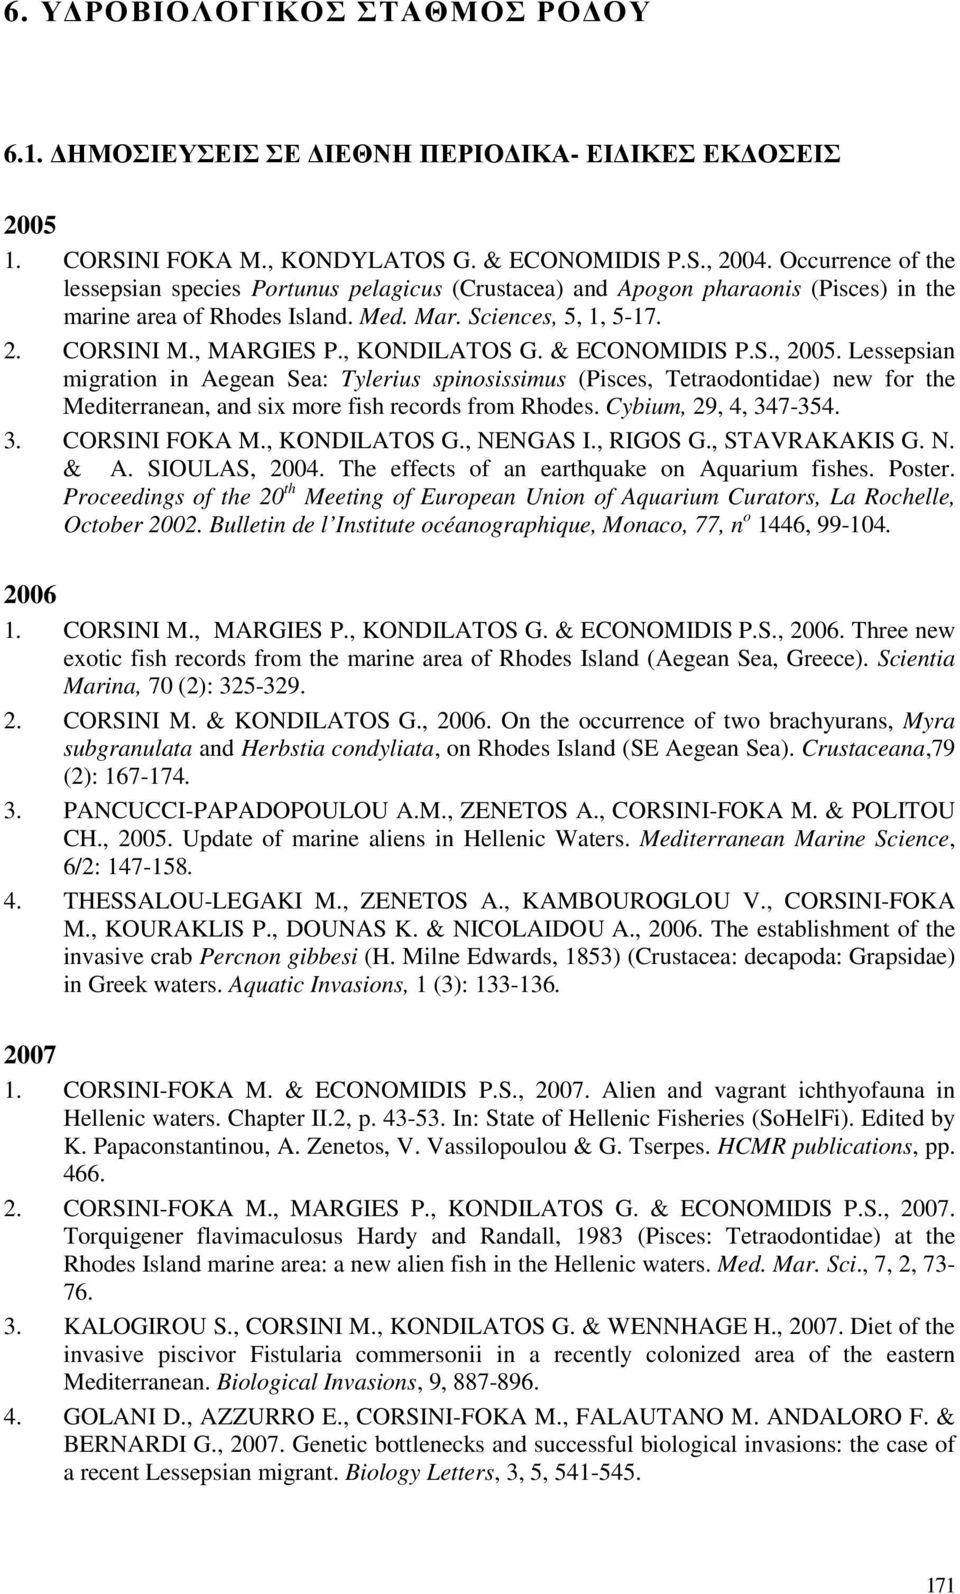 , KONDILATOS G. & ECONOMIDIS P.S., 2005. Lessepsian migration in Aegean Sea: Tylerius spinosissimus (Pisces, Tetraodontidae) new for the Mediterranean, and six more fish records from Rhodes.